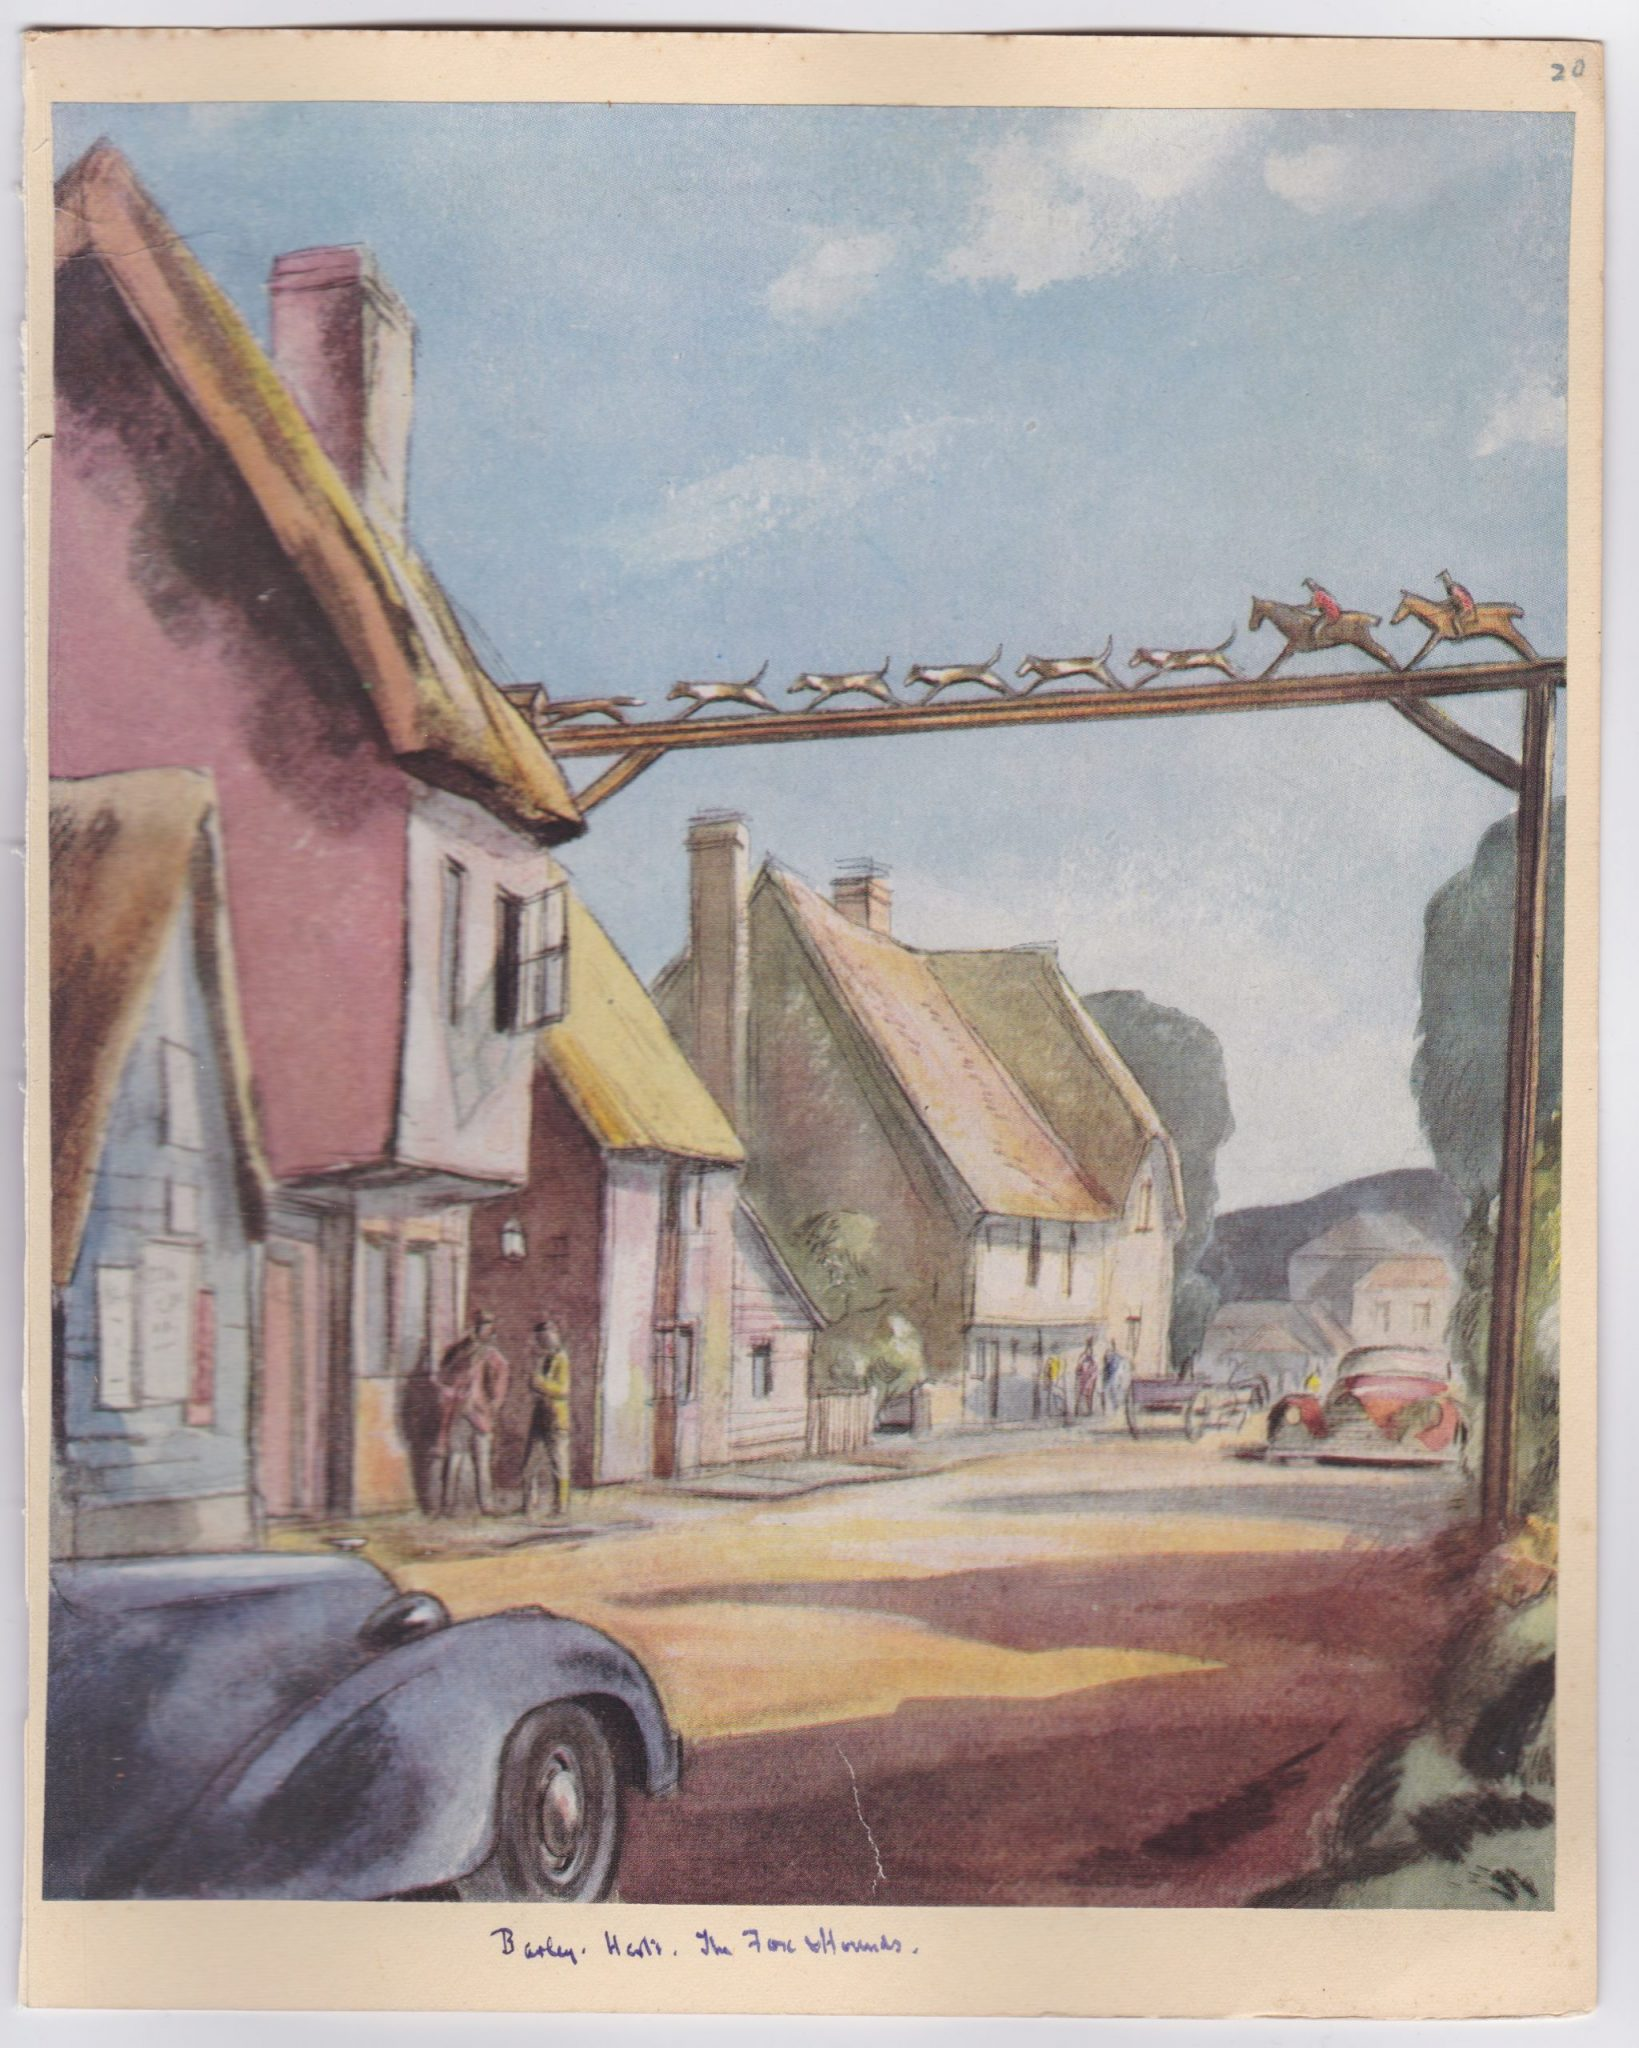 The Fox and Hounds pub shown as a watercolour painting